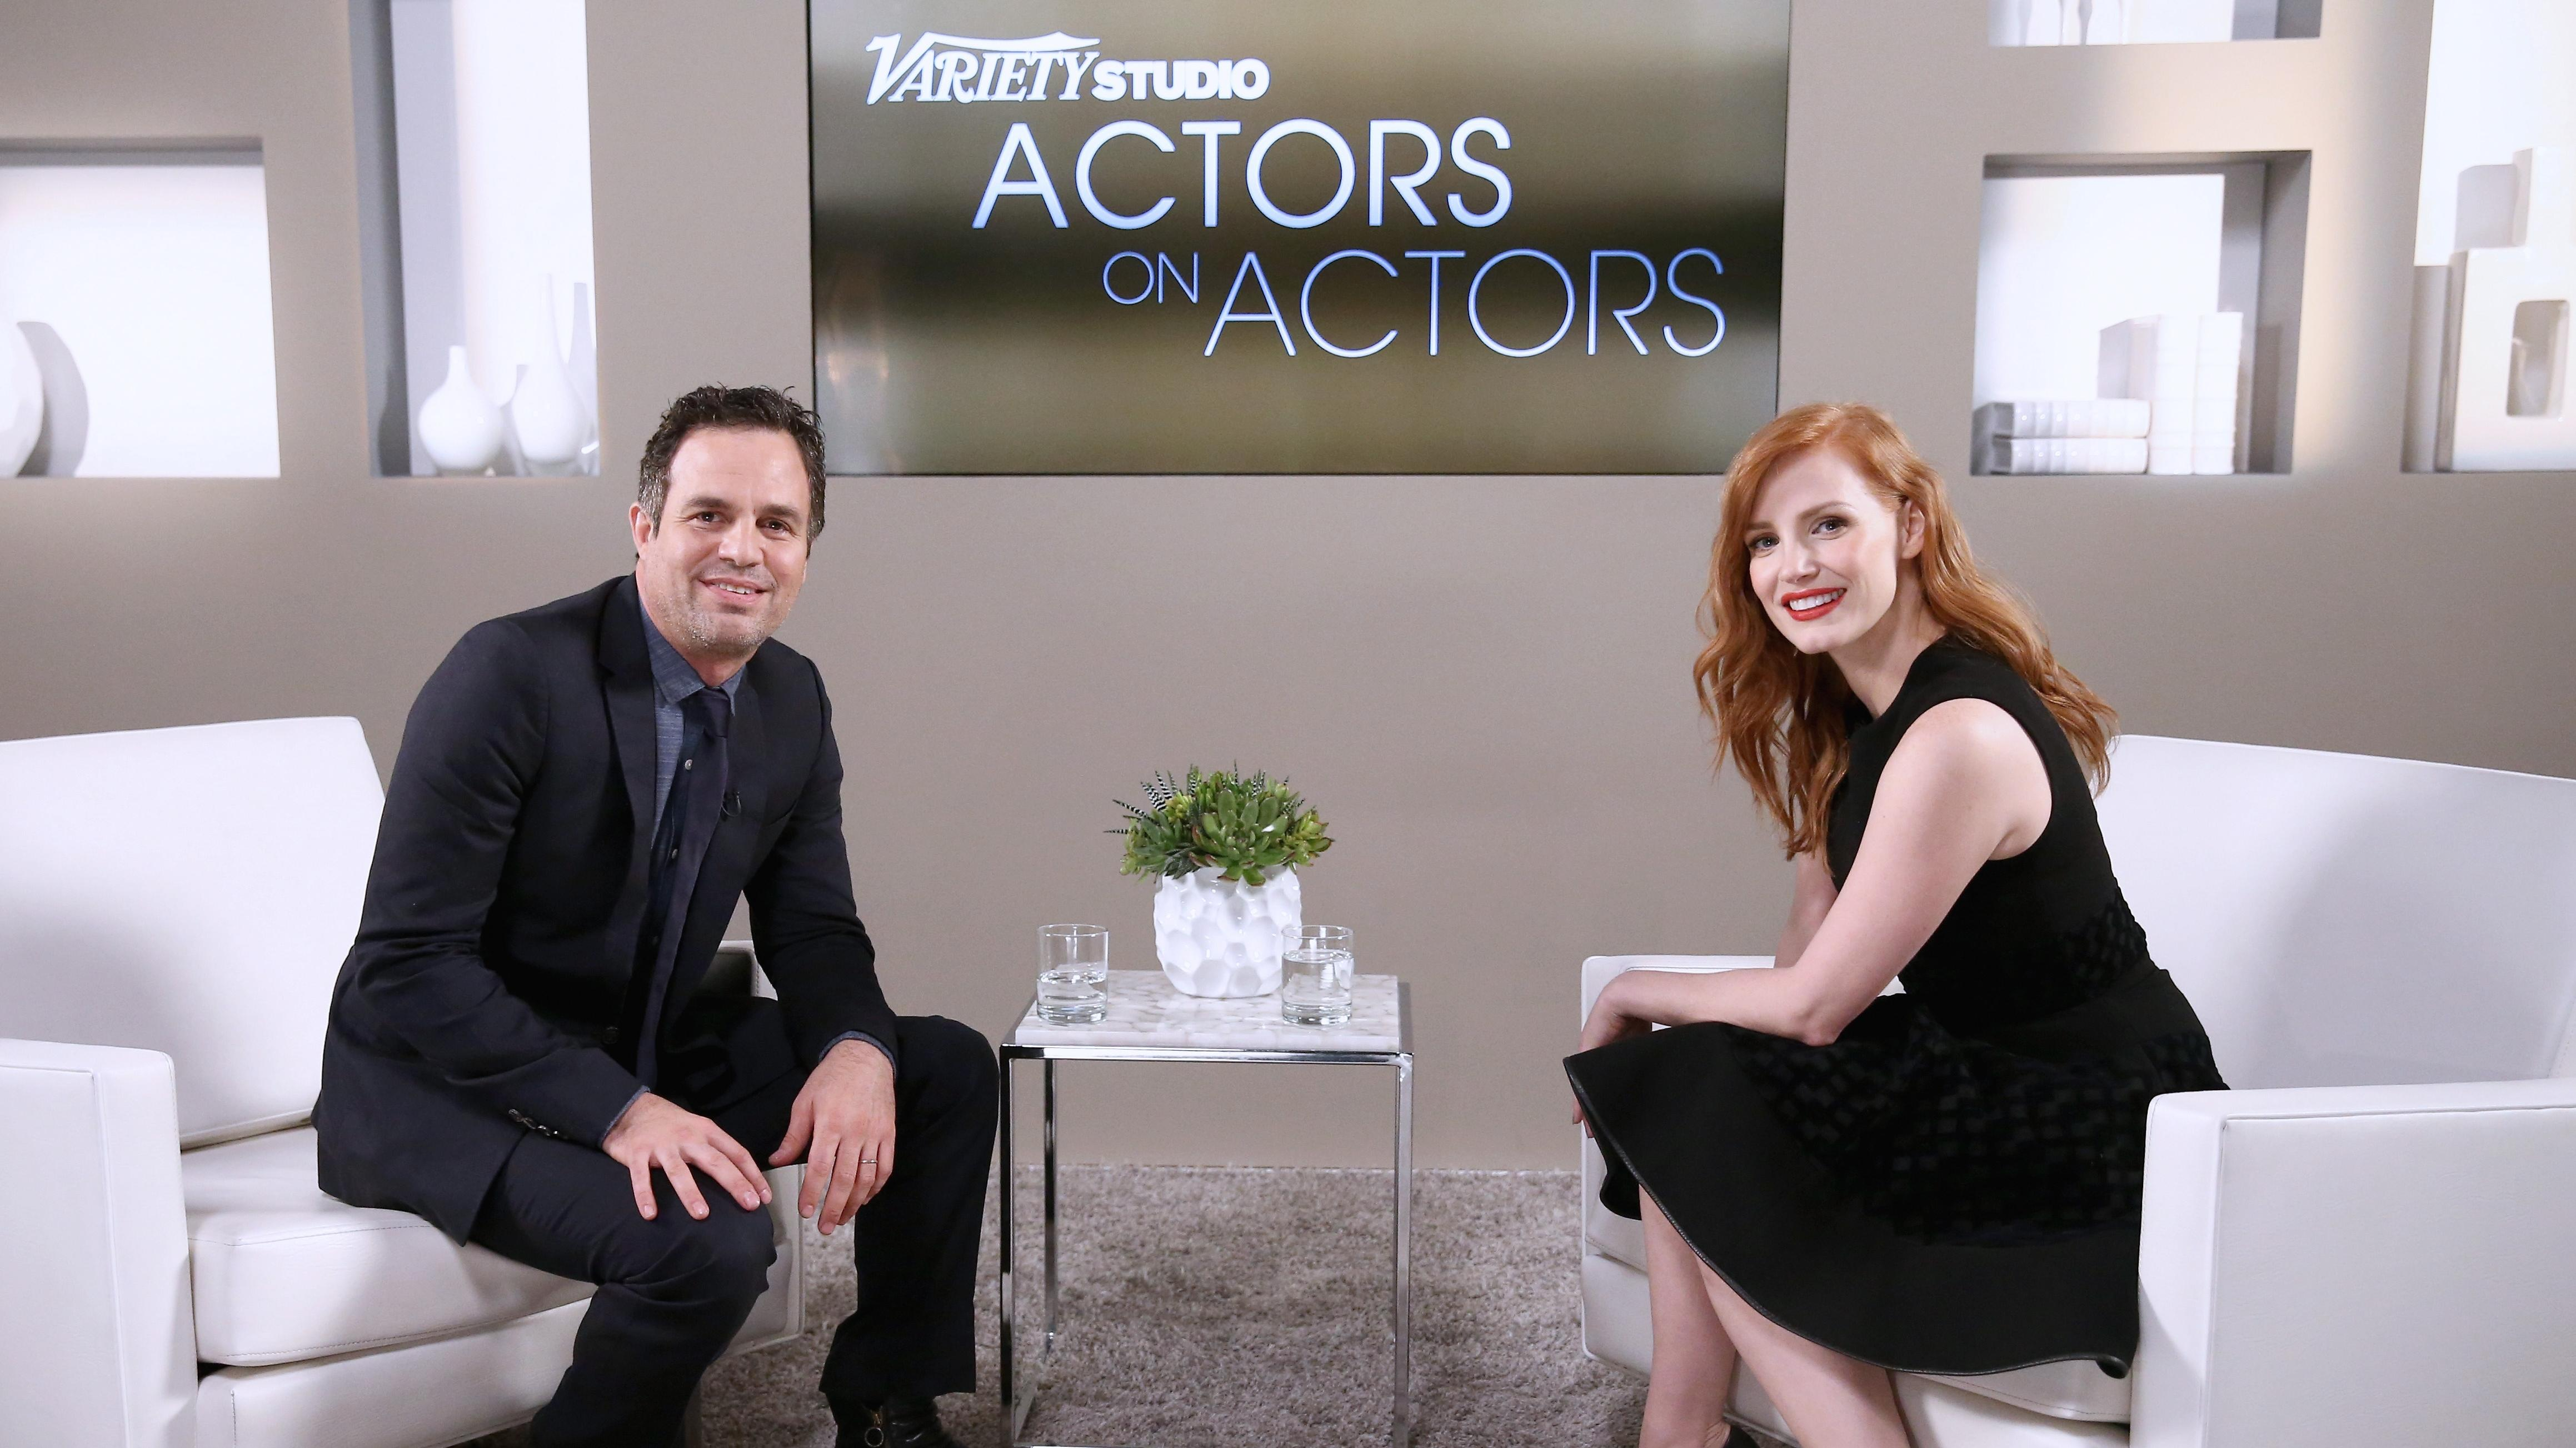 Variety and PBS SoCal to Air Emmy Edition of 'Variety Studio: Actors on Actors'